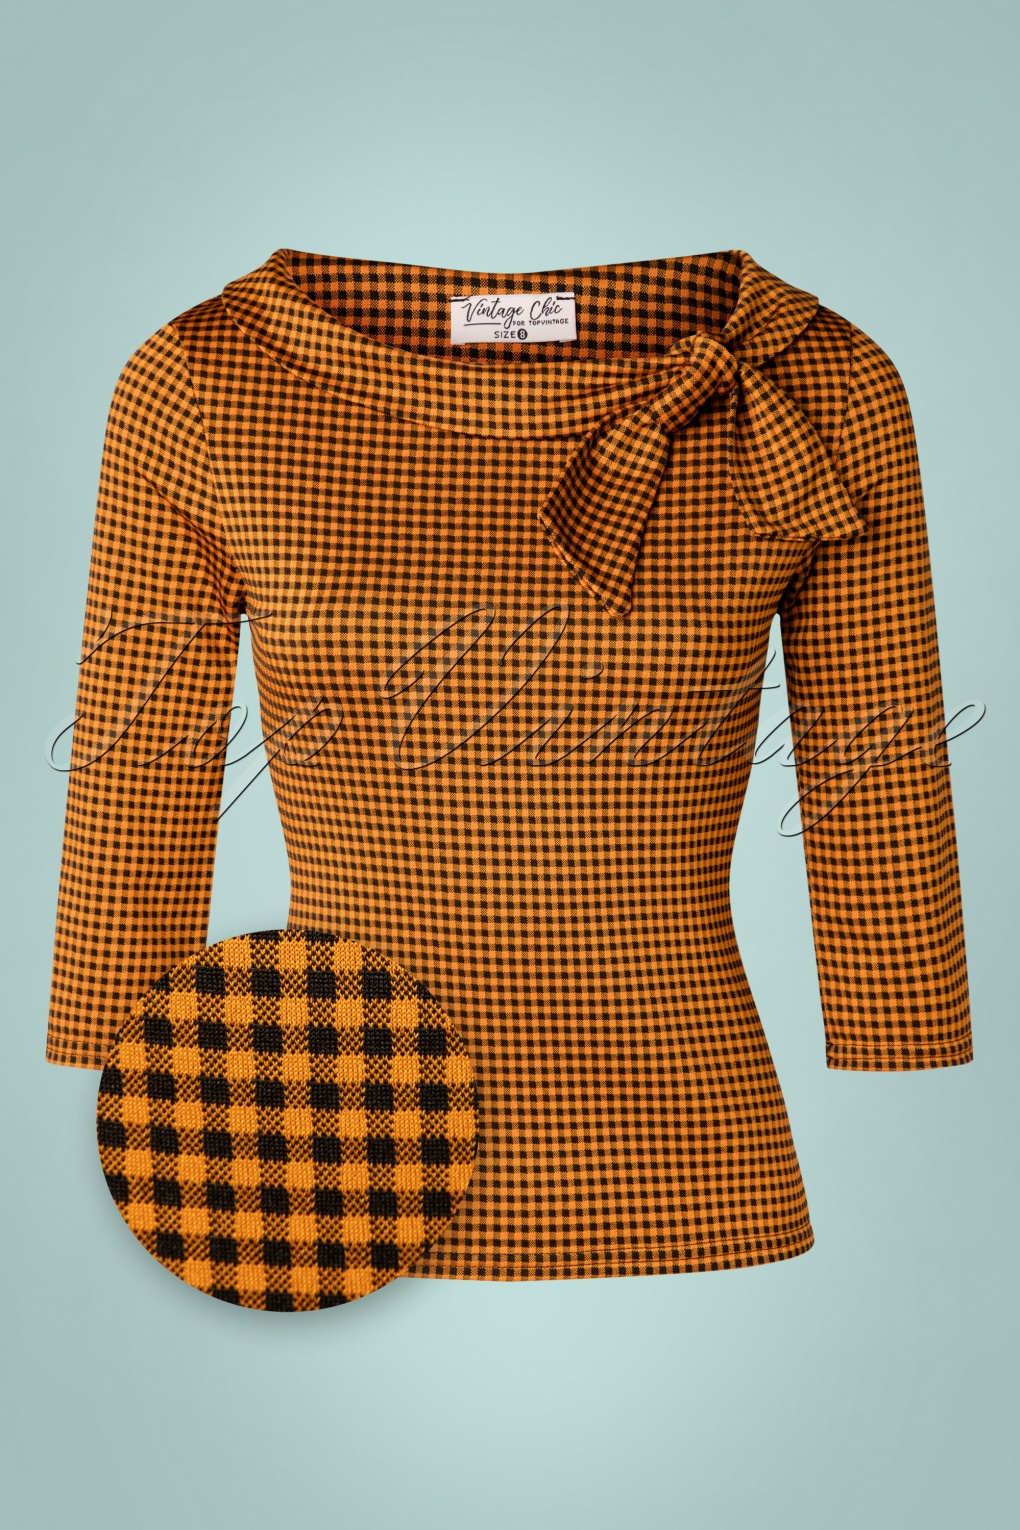 60s Shirts, T-shirts, Blouses, Hippie Shirts 50s Belle Bow Top in Cinnamon Gingham £31.31 AT vintagedancer.com